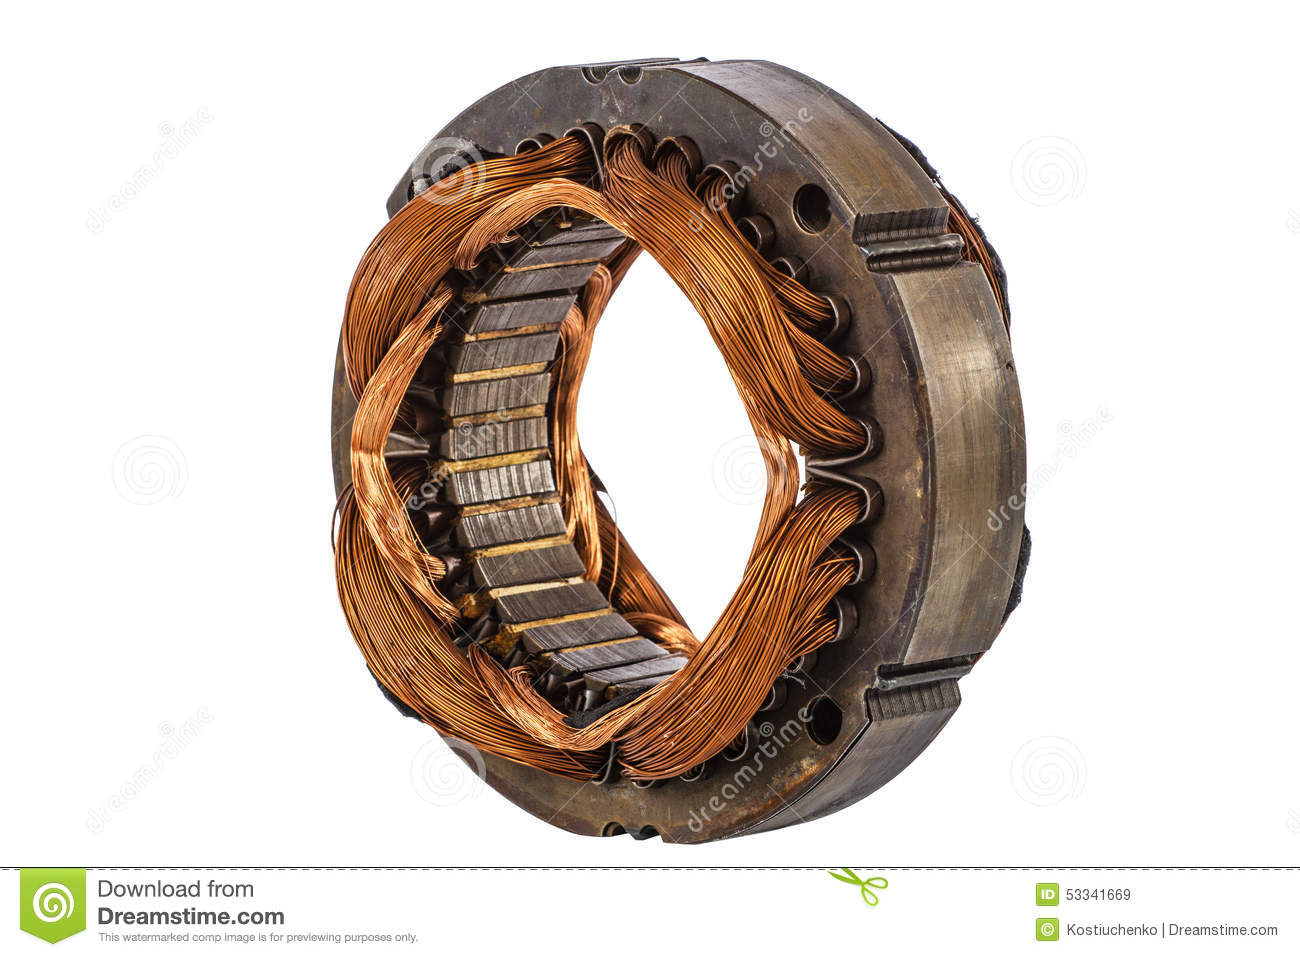 Stator Of The Electric Motor Isolated On White Background Stock Photo Image 53341669